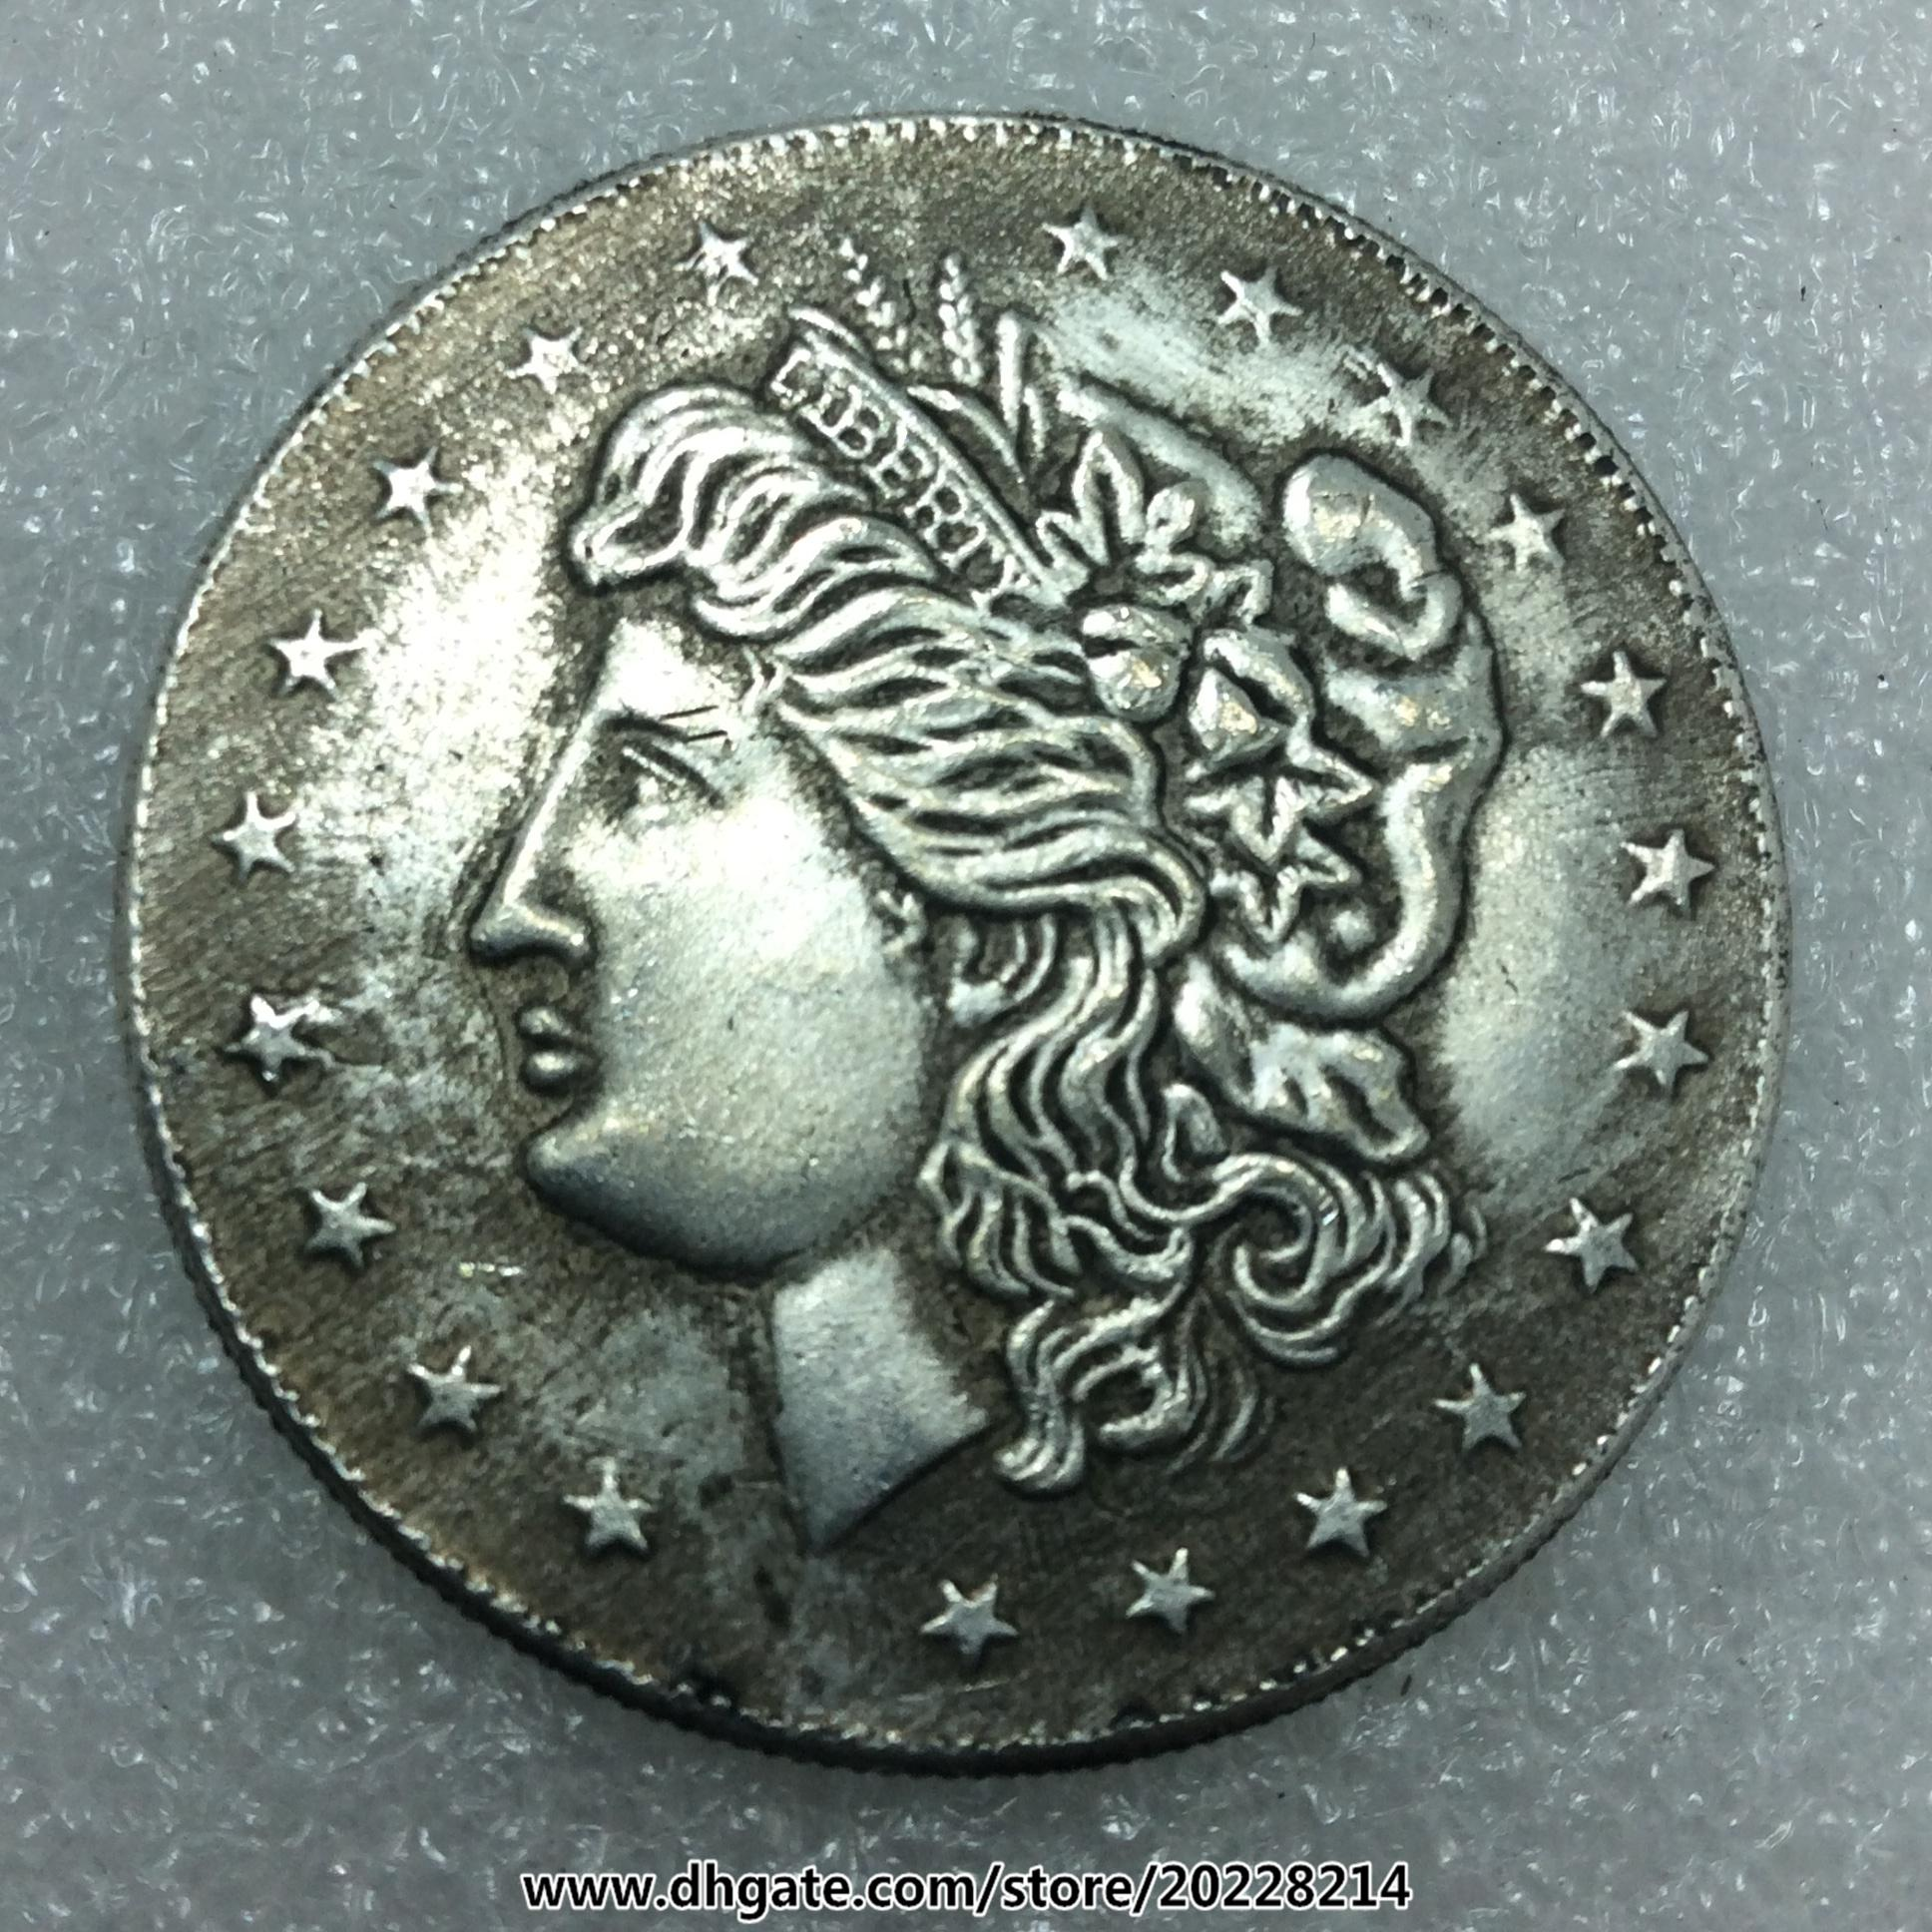 Find Value Of A Troy Ounce Of Silver